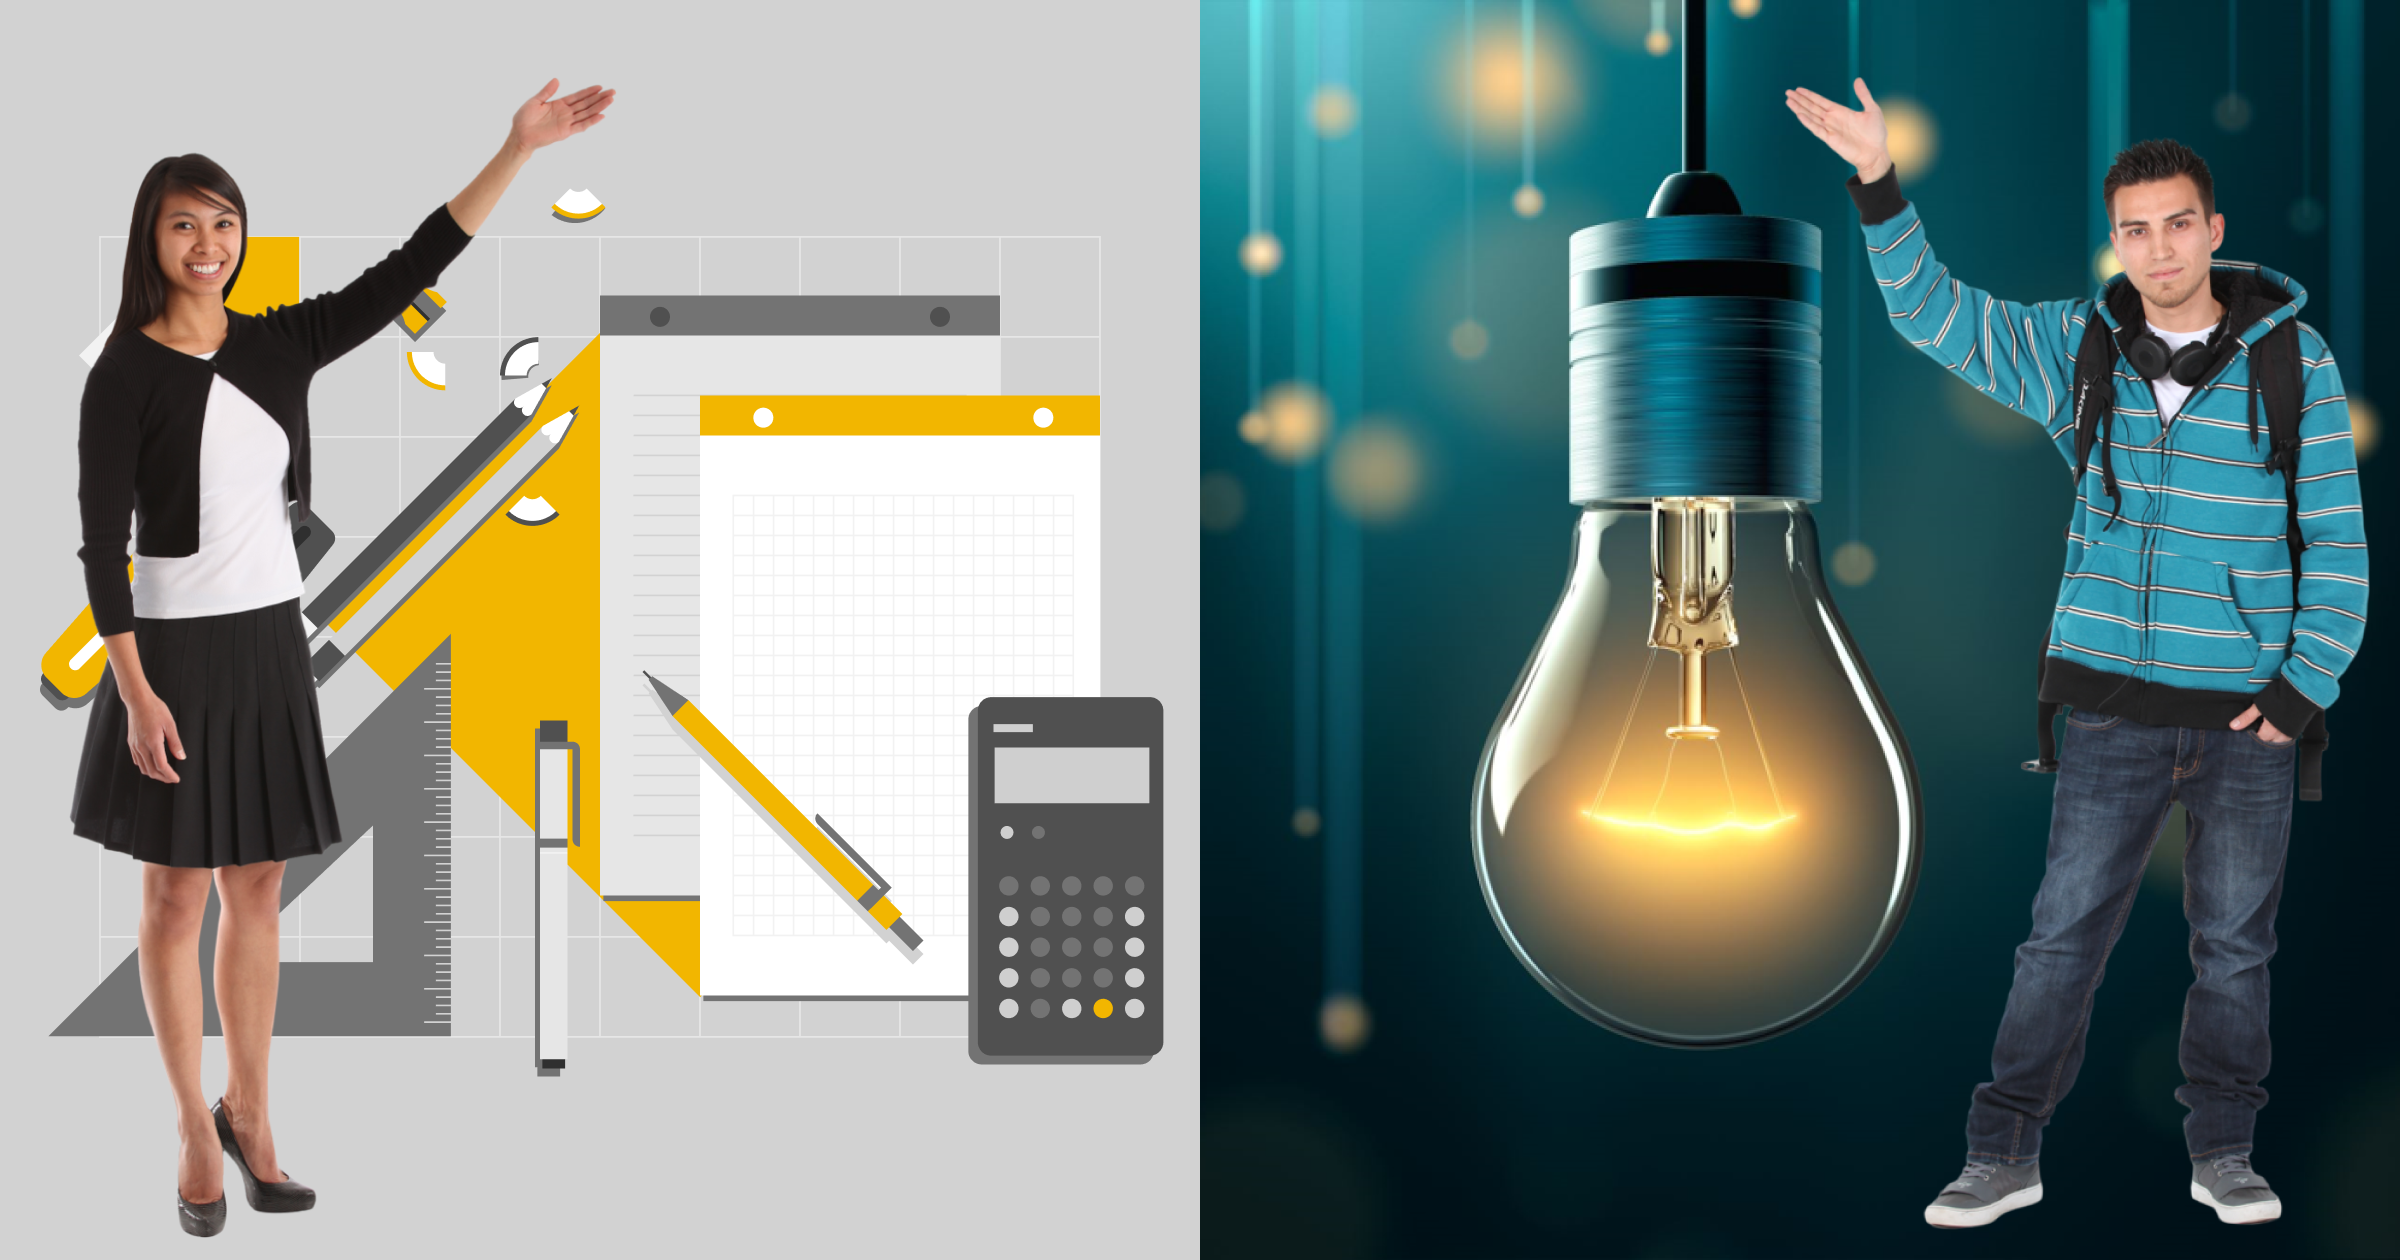 Collage of images including cut-out photos of two people, a photo of a lightbulb and an illustration of desk equipment